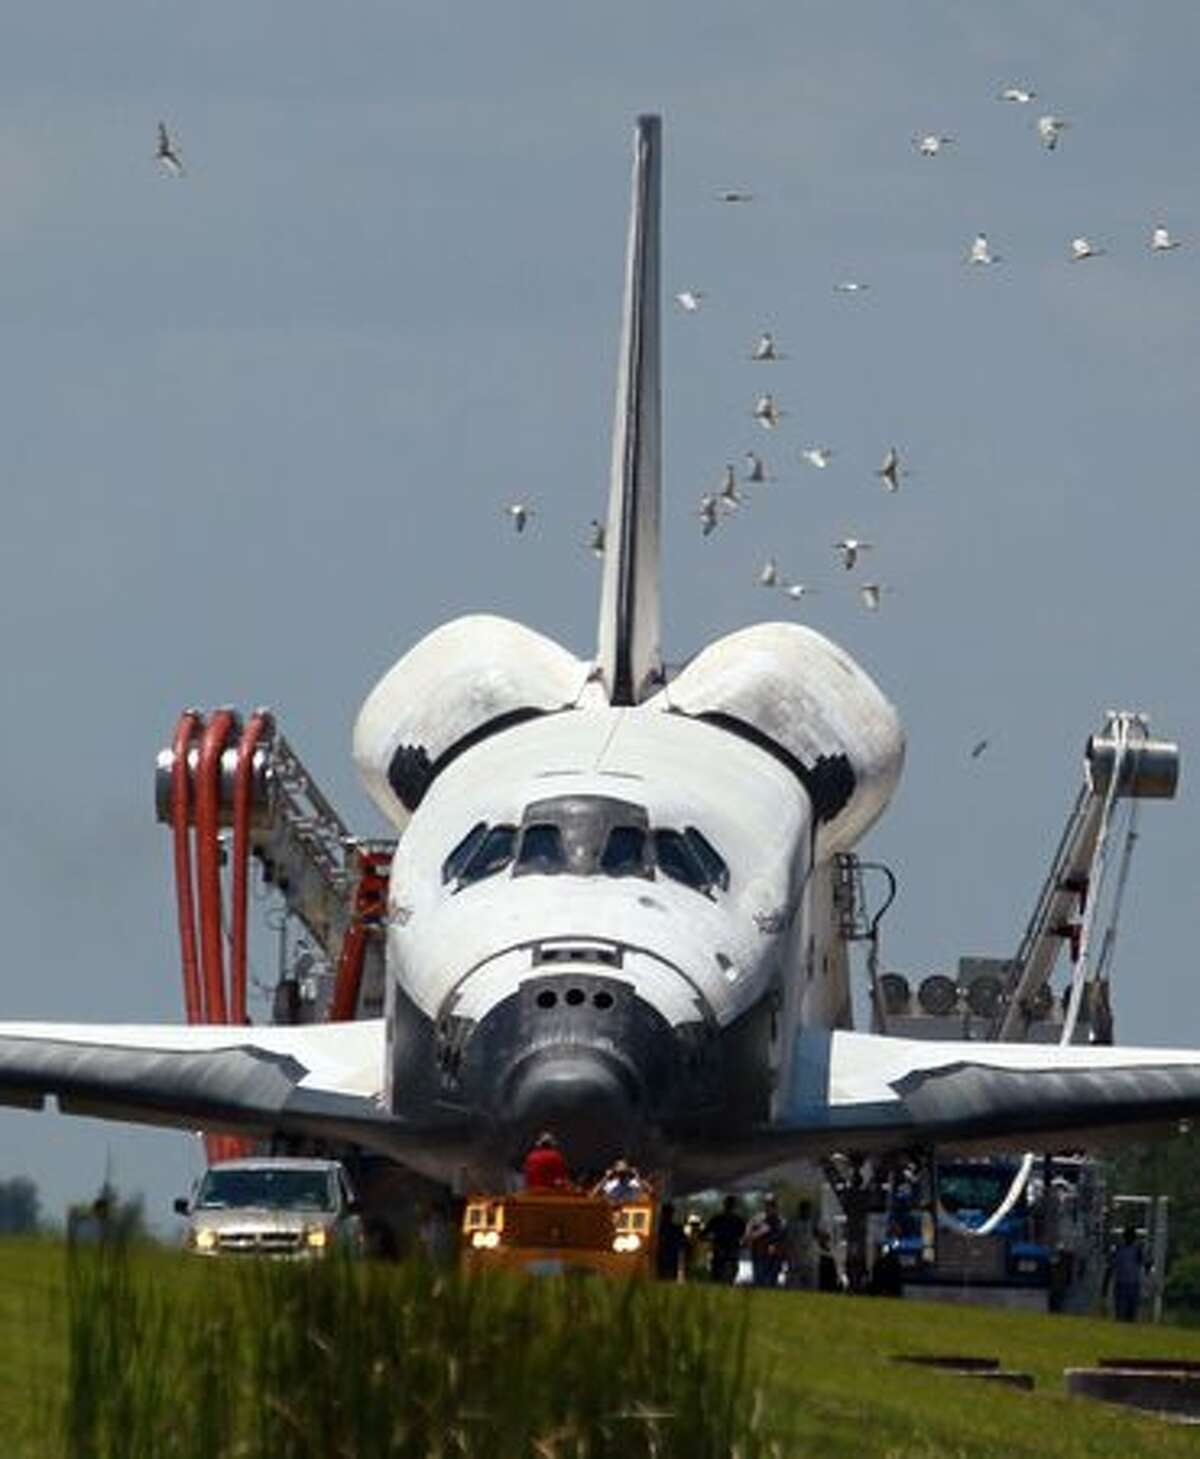 The Space Shuttle Atlantis is towed back to the Orbiter Processing Facility after it returned to Kennedy Space Center in Cape Canaveral, Florida.